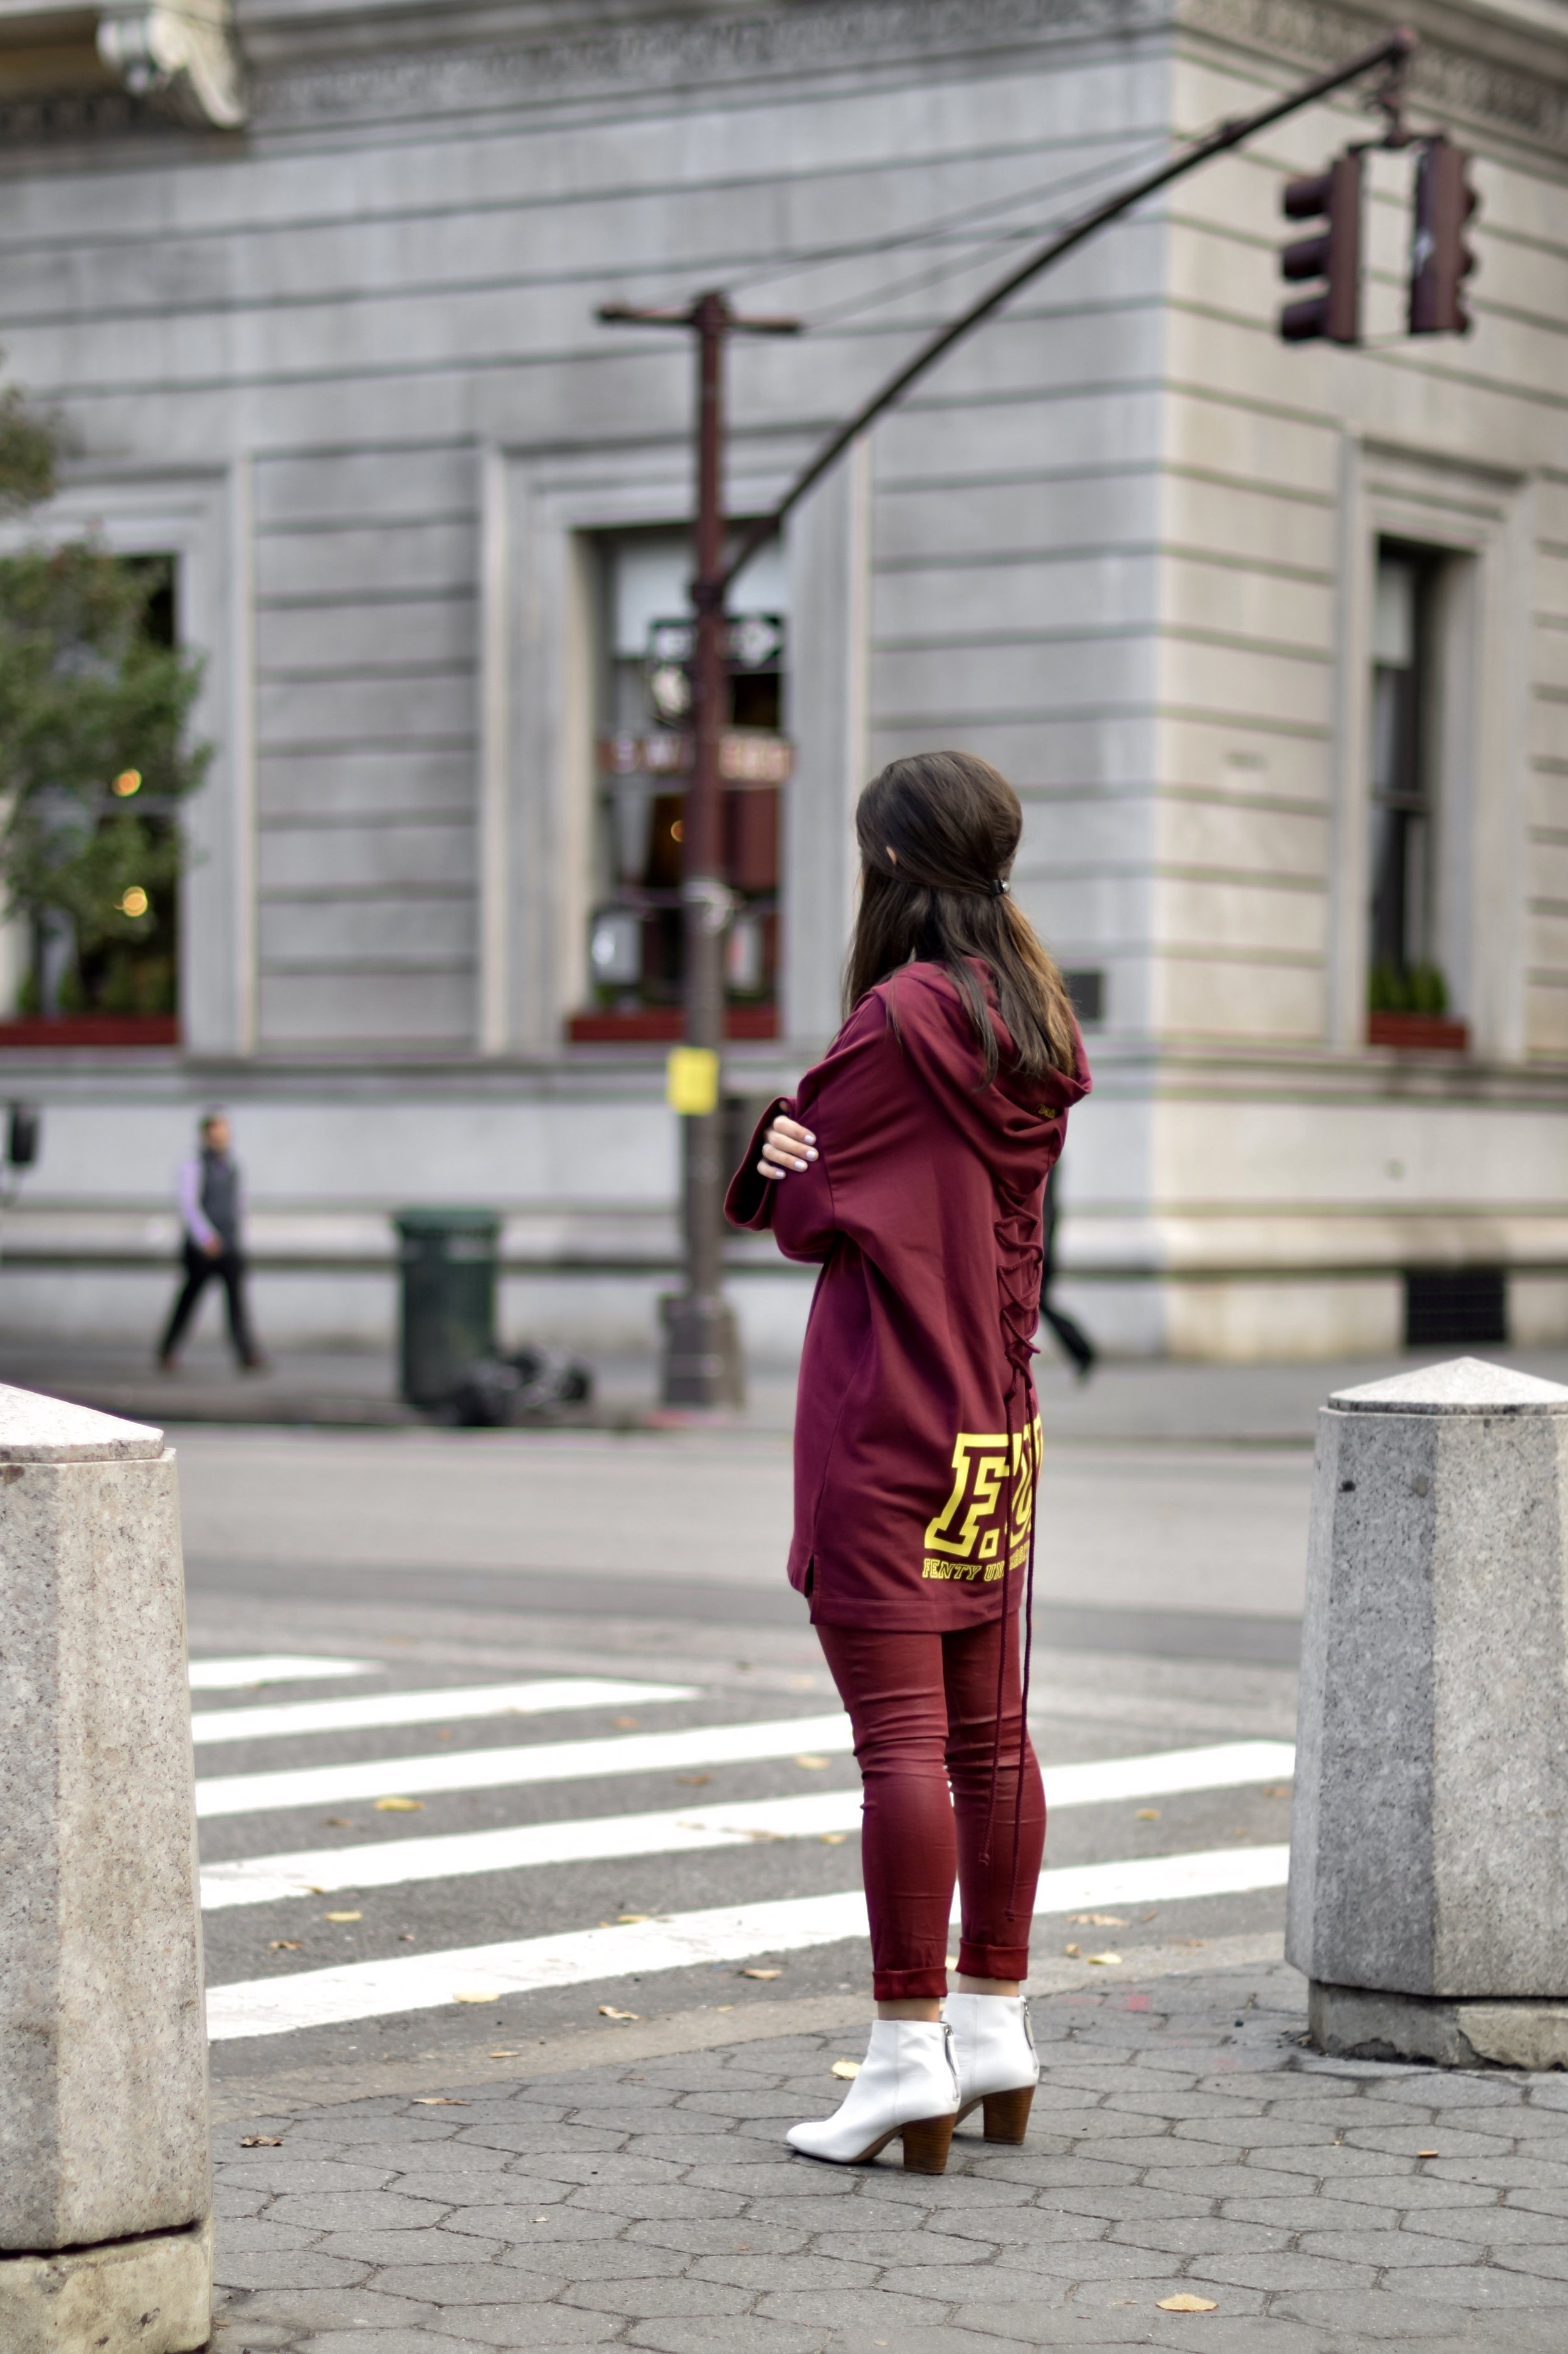 What Do Bloggers Still Pay For Monochrome Maroon Outfit White Booties Esther Santer Fashion Blog NYC Street Style Blogger Outfit OOTD Trendy Burgundy Color AG Jeans Fenty Puma Rihanna Oversized Sweatshirt Girl Women Shopping Winter Fall Look New York.jpg